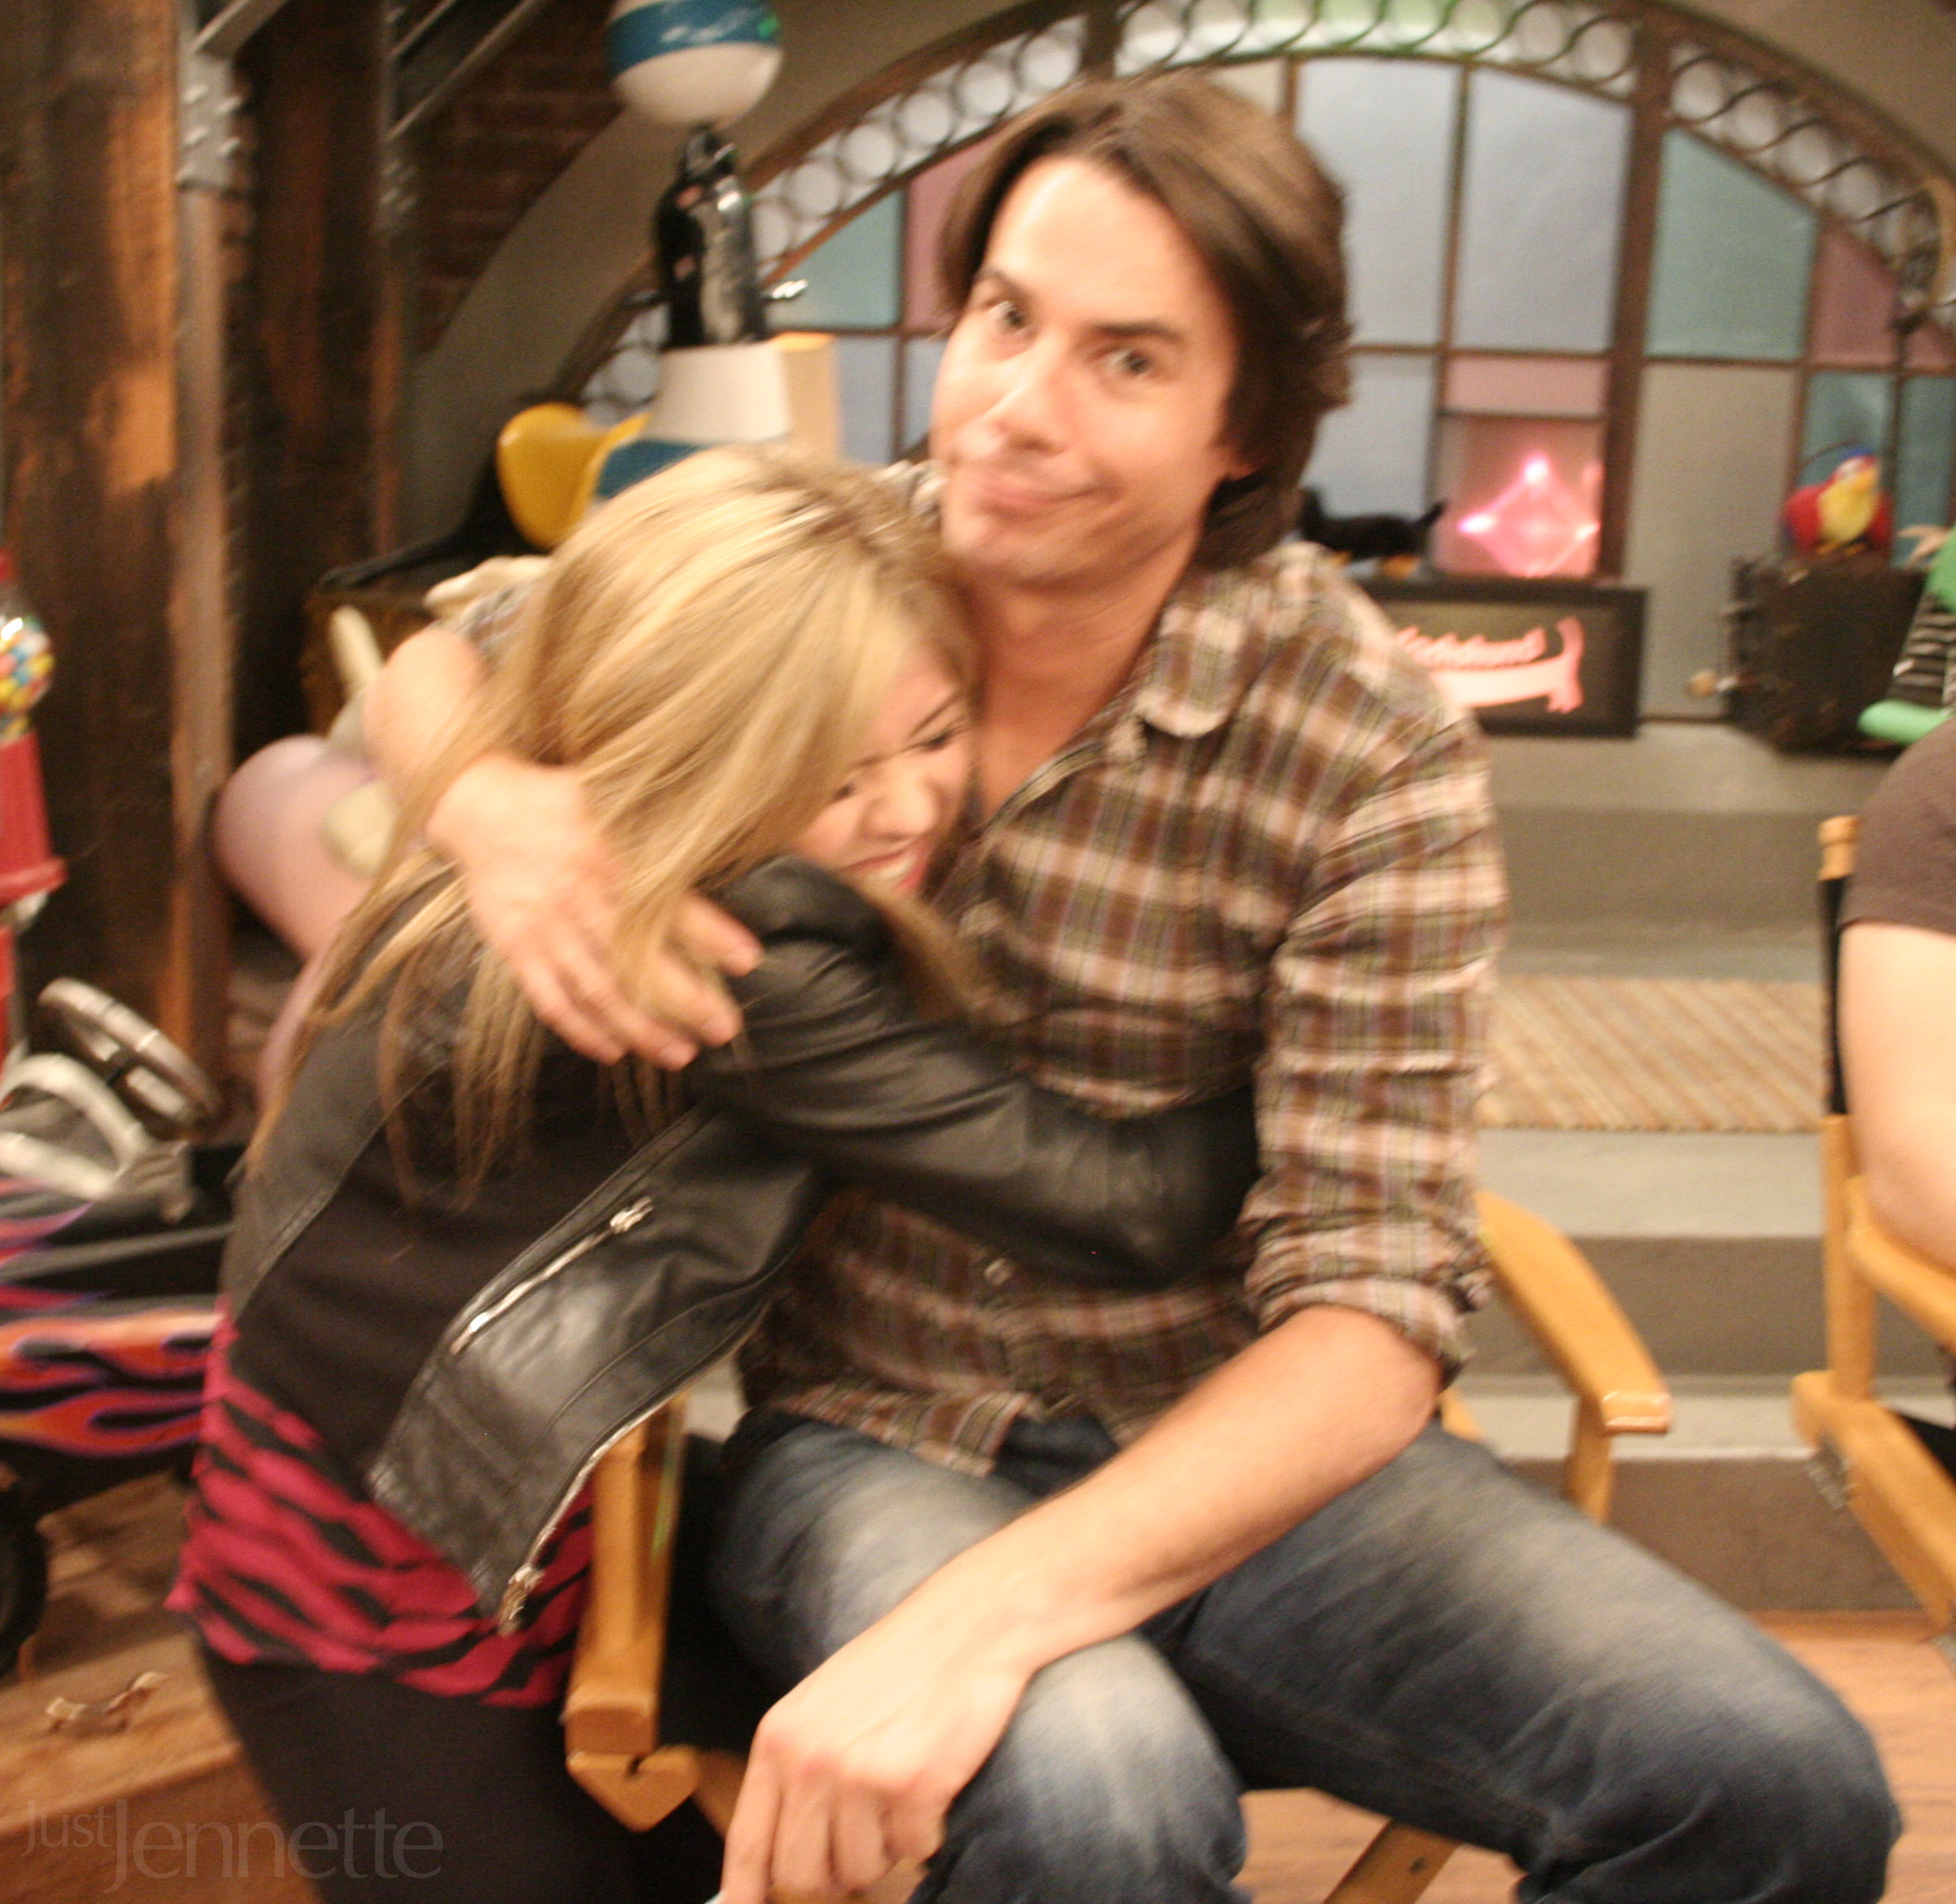 Who Is Jerry Trainor Dating?